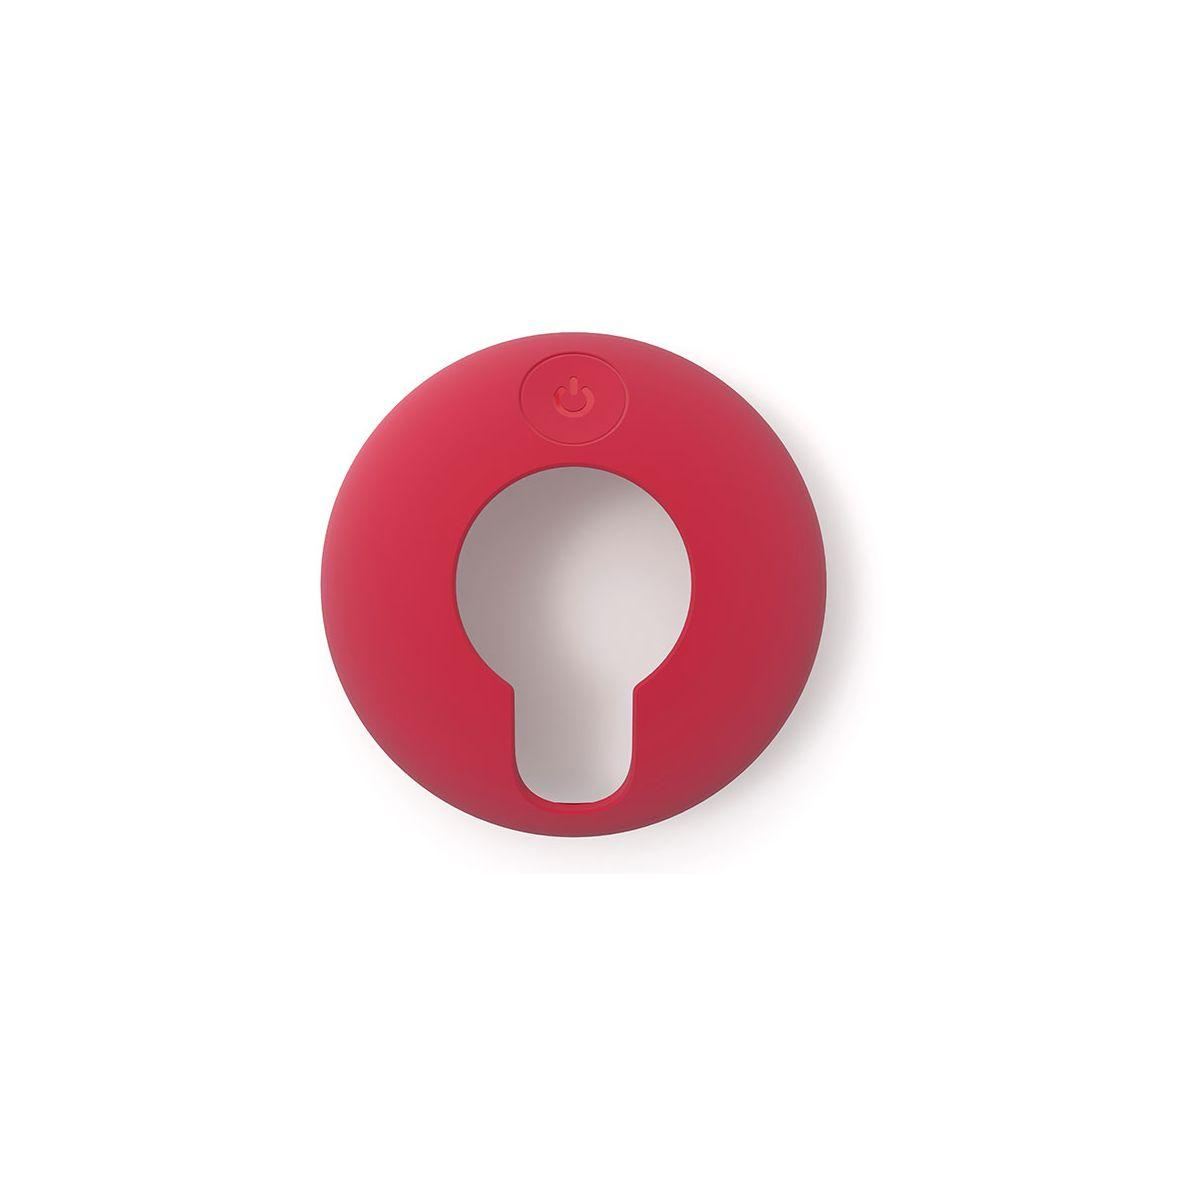 Coque tomtom coque protection silicone rouge vio (photo)